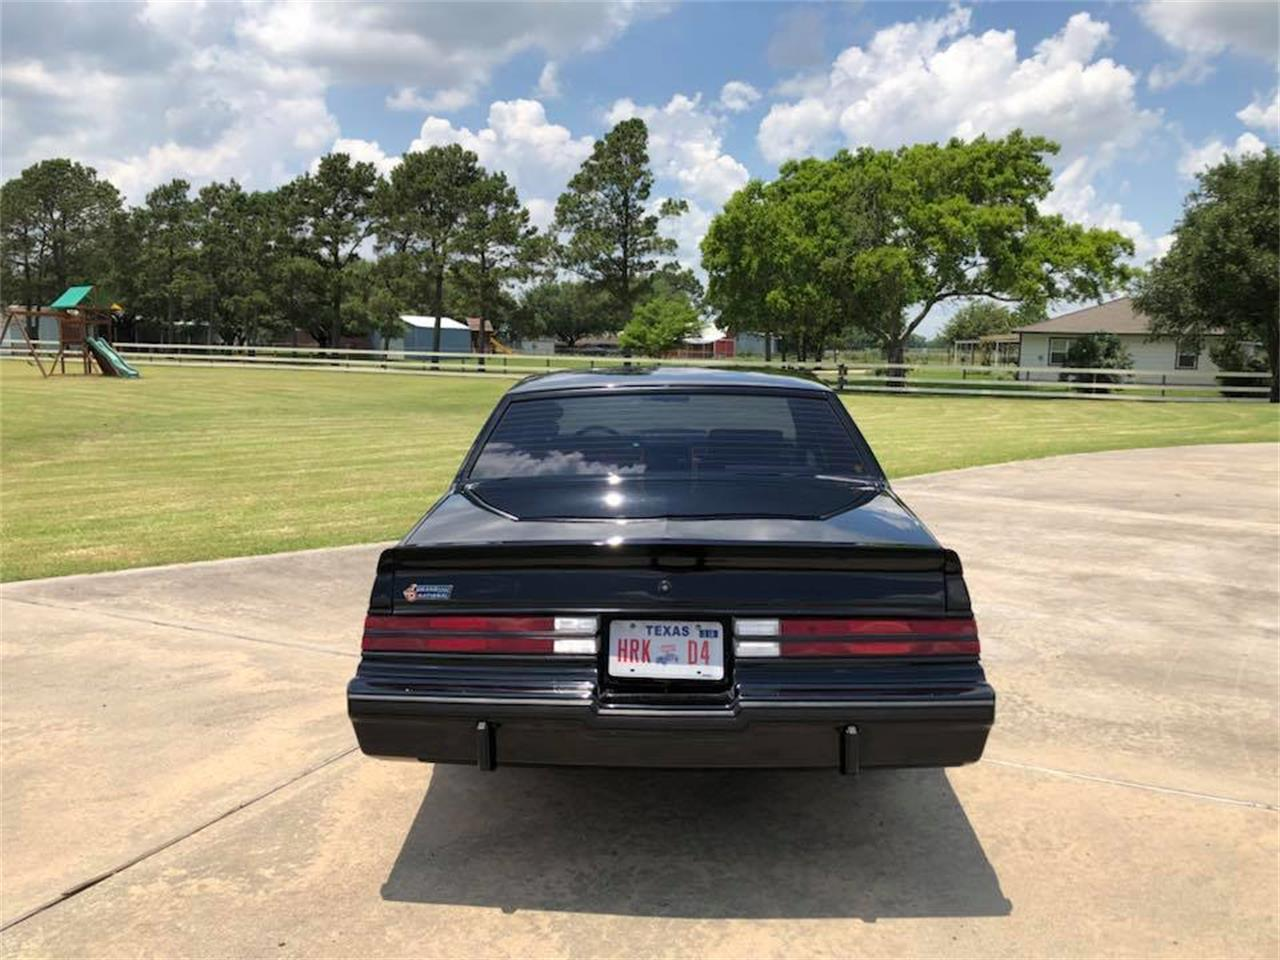 Large Picture of '86 Grand National located in BEASLEY Texas - $35,000.00 Offered by a Private Seller - Q8HL